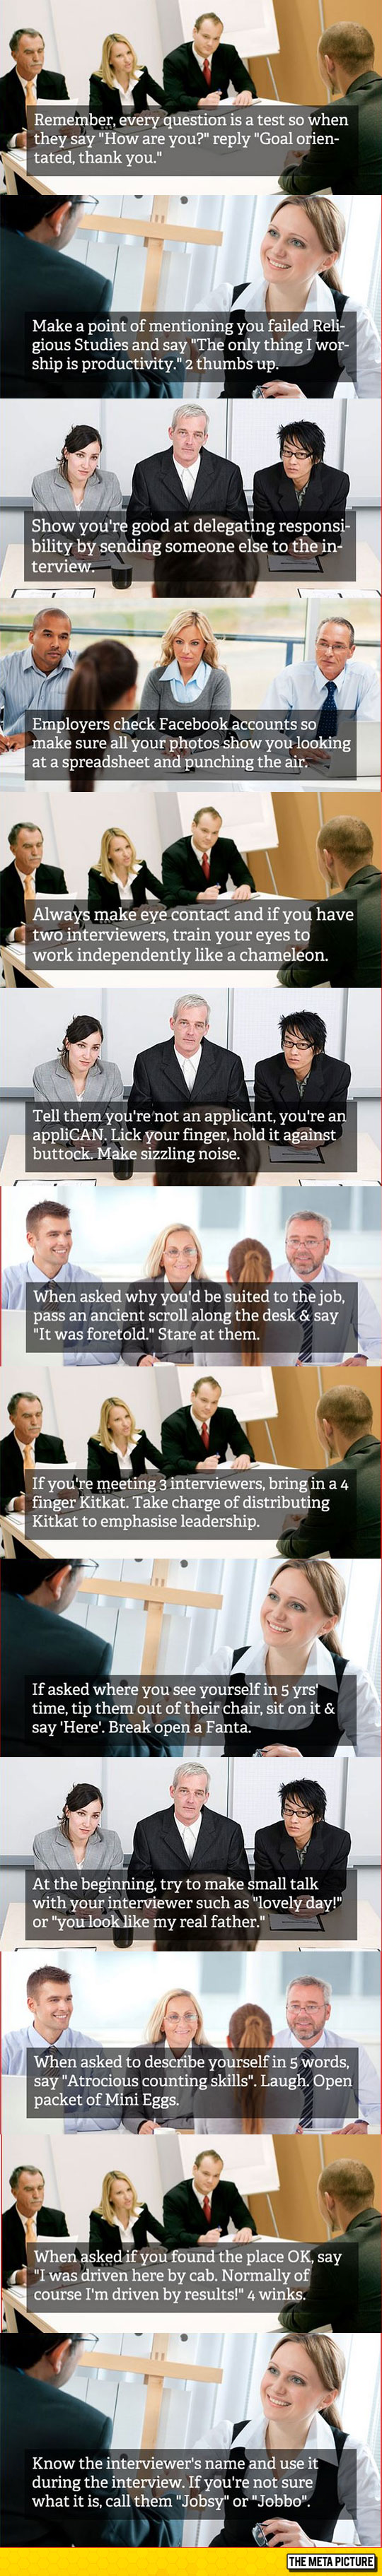 cool-job-interview-tips-office